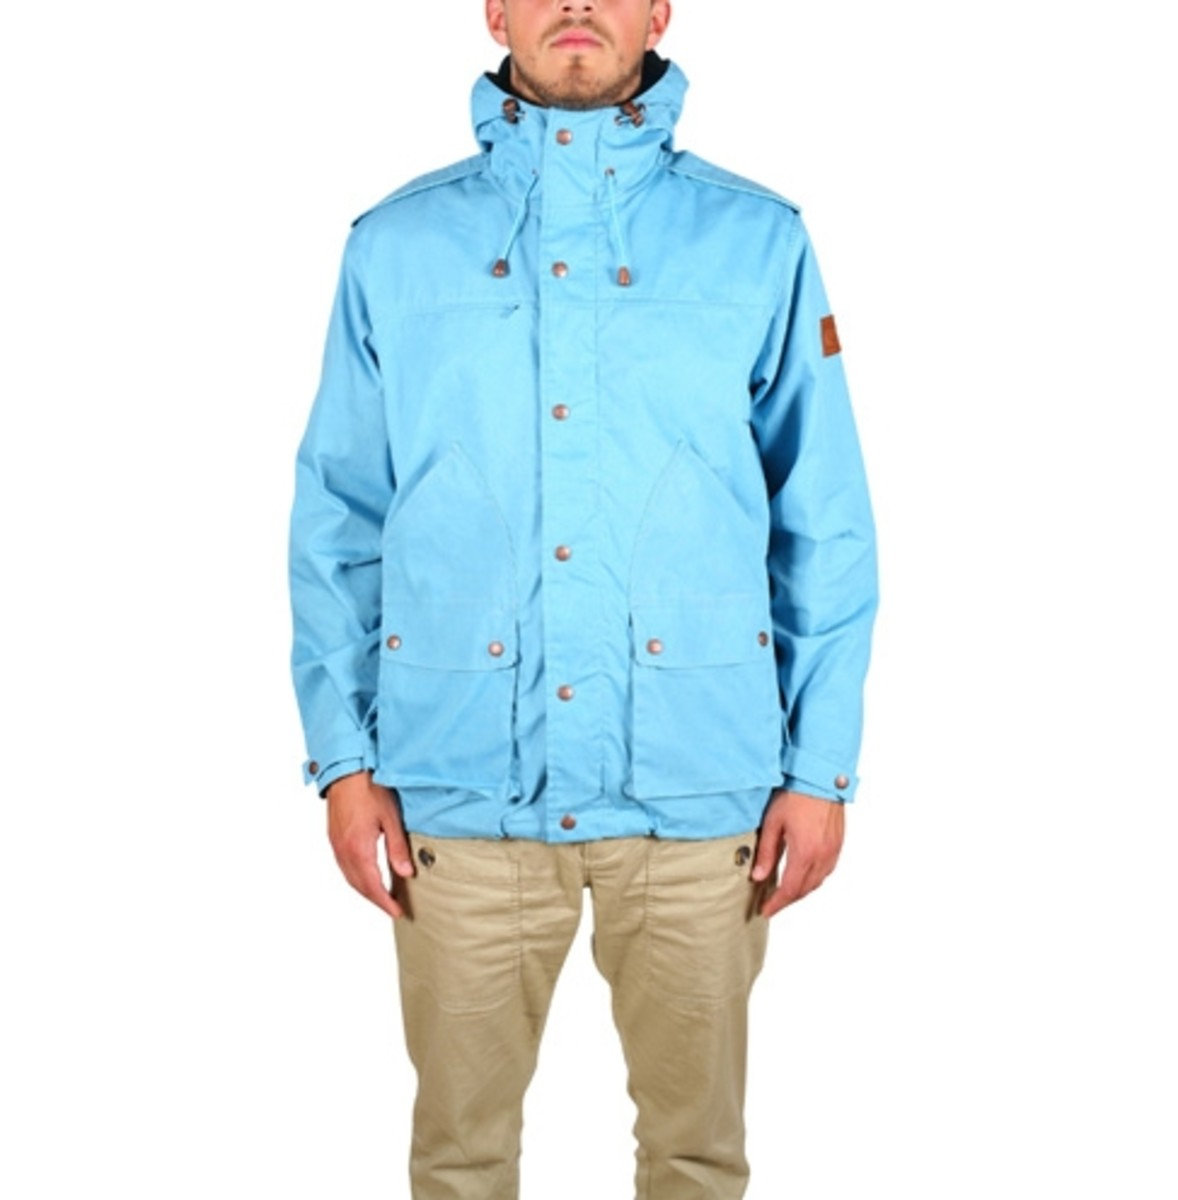 Penfield SS2011 Jackets 32